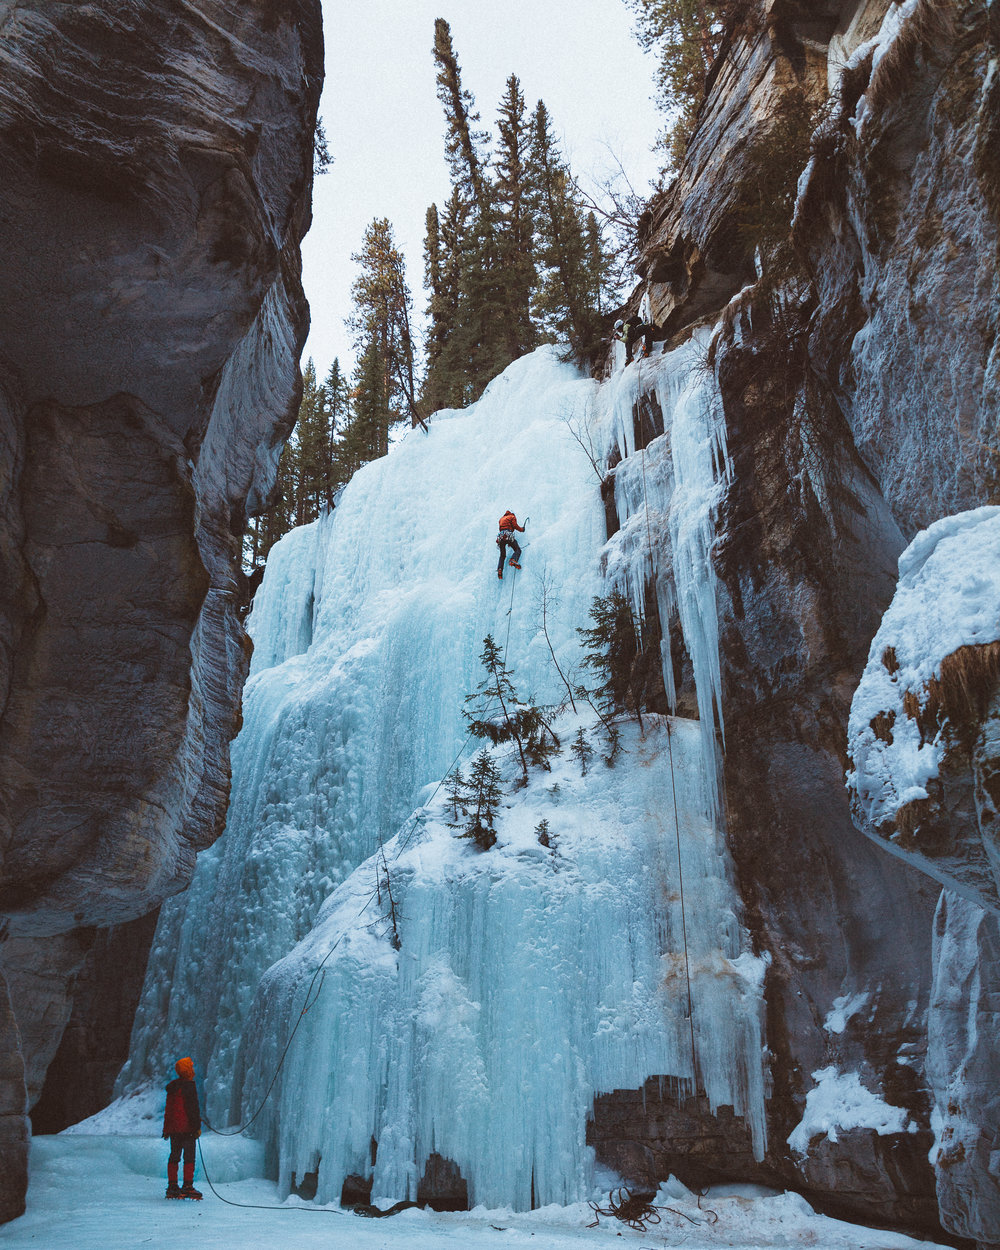 Ice climbers in Maligne Canyon